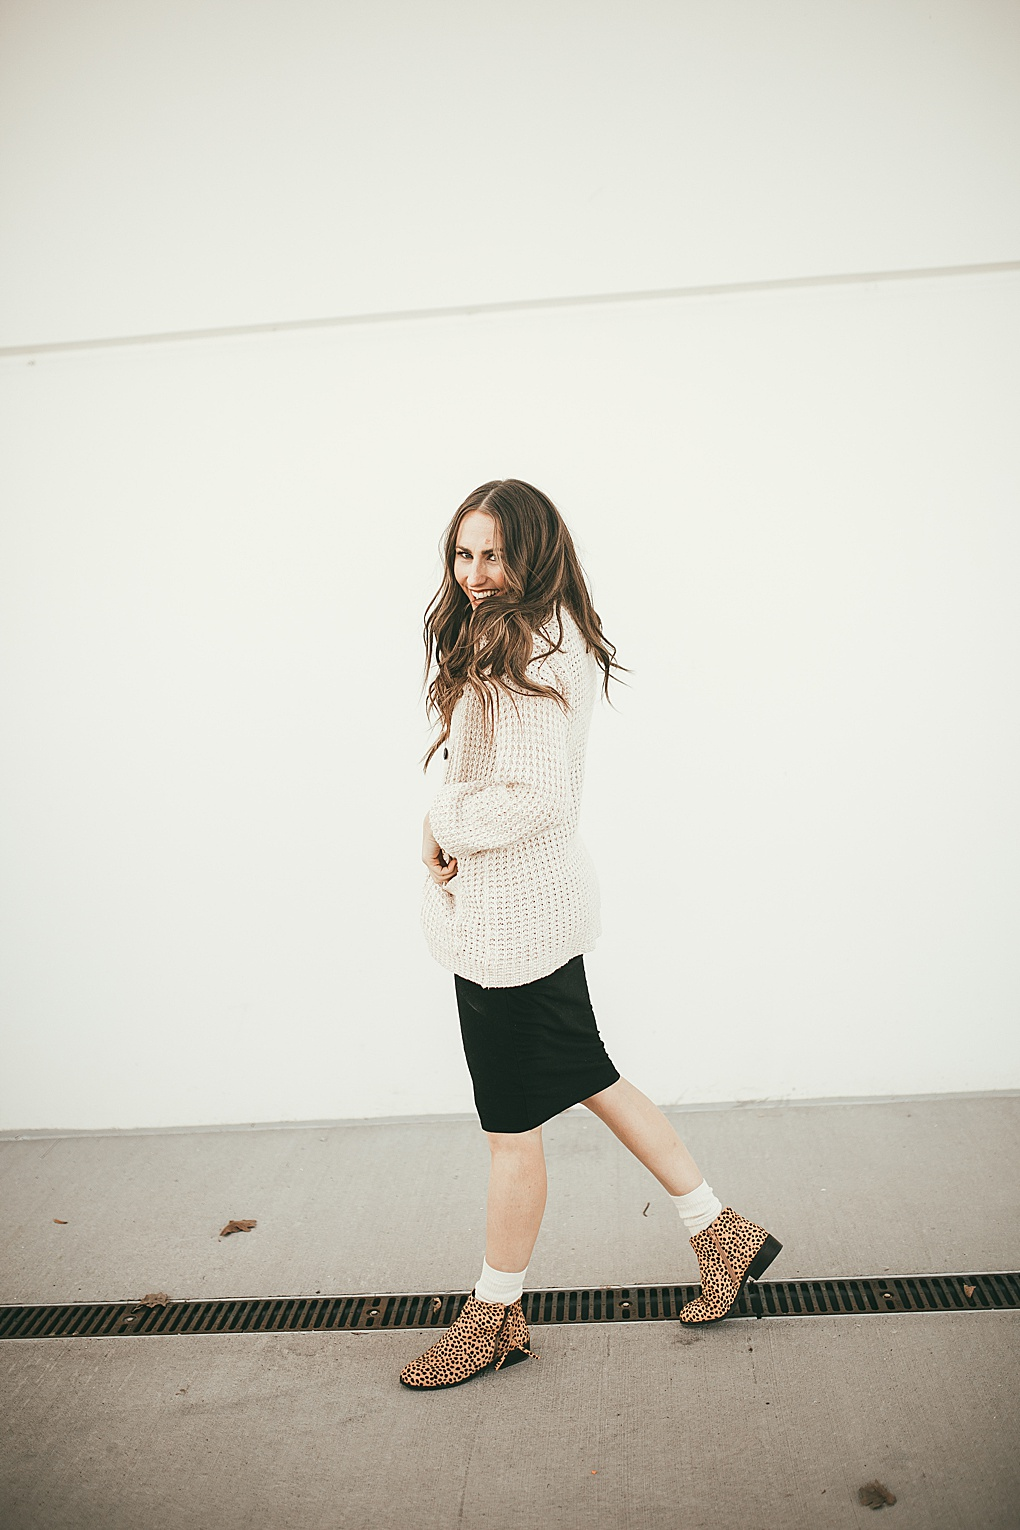 Have you ever wondered how to style socks with booties? Utah Style Blogger Dani Marie is sharing her top styling tips to rock socks with boooties this year! Click to see them HERE!